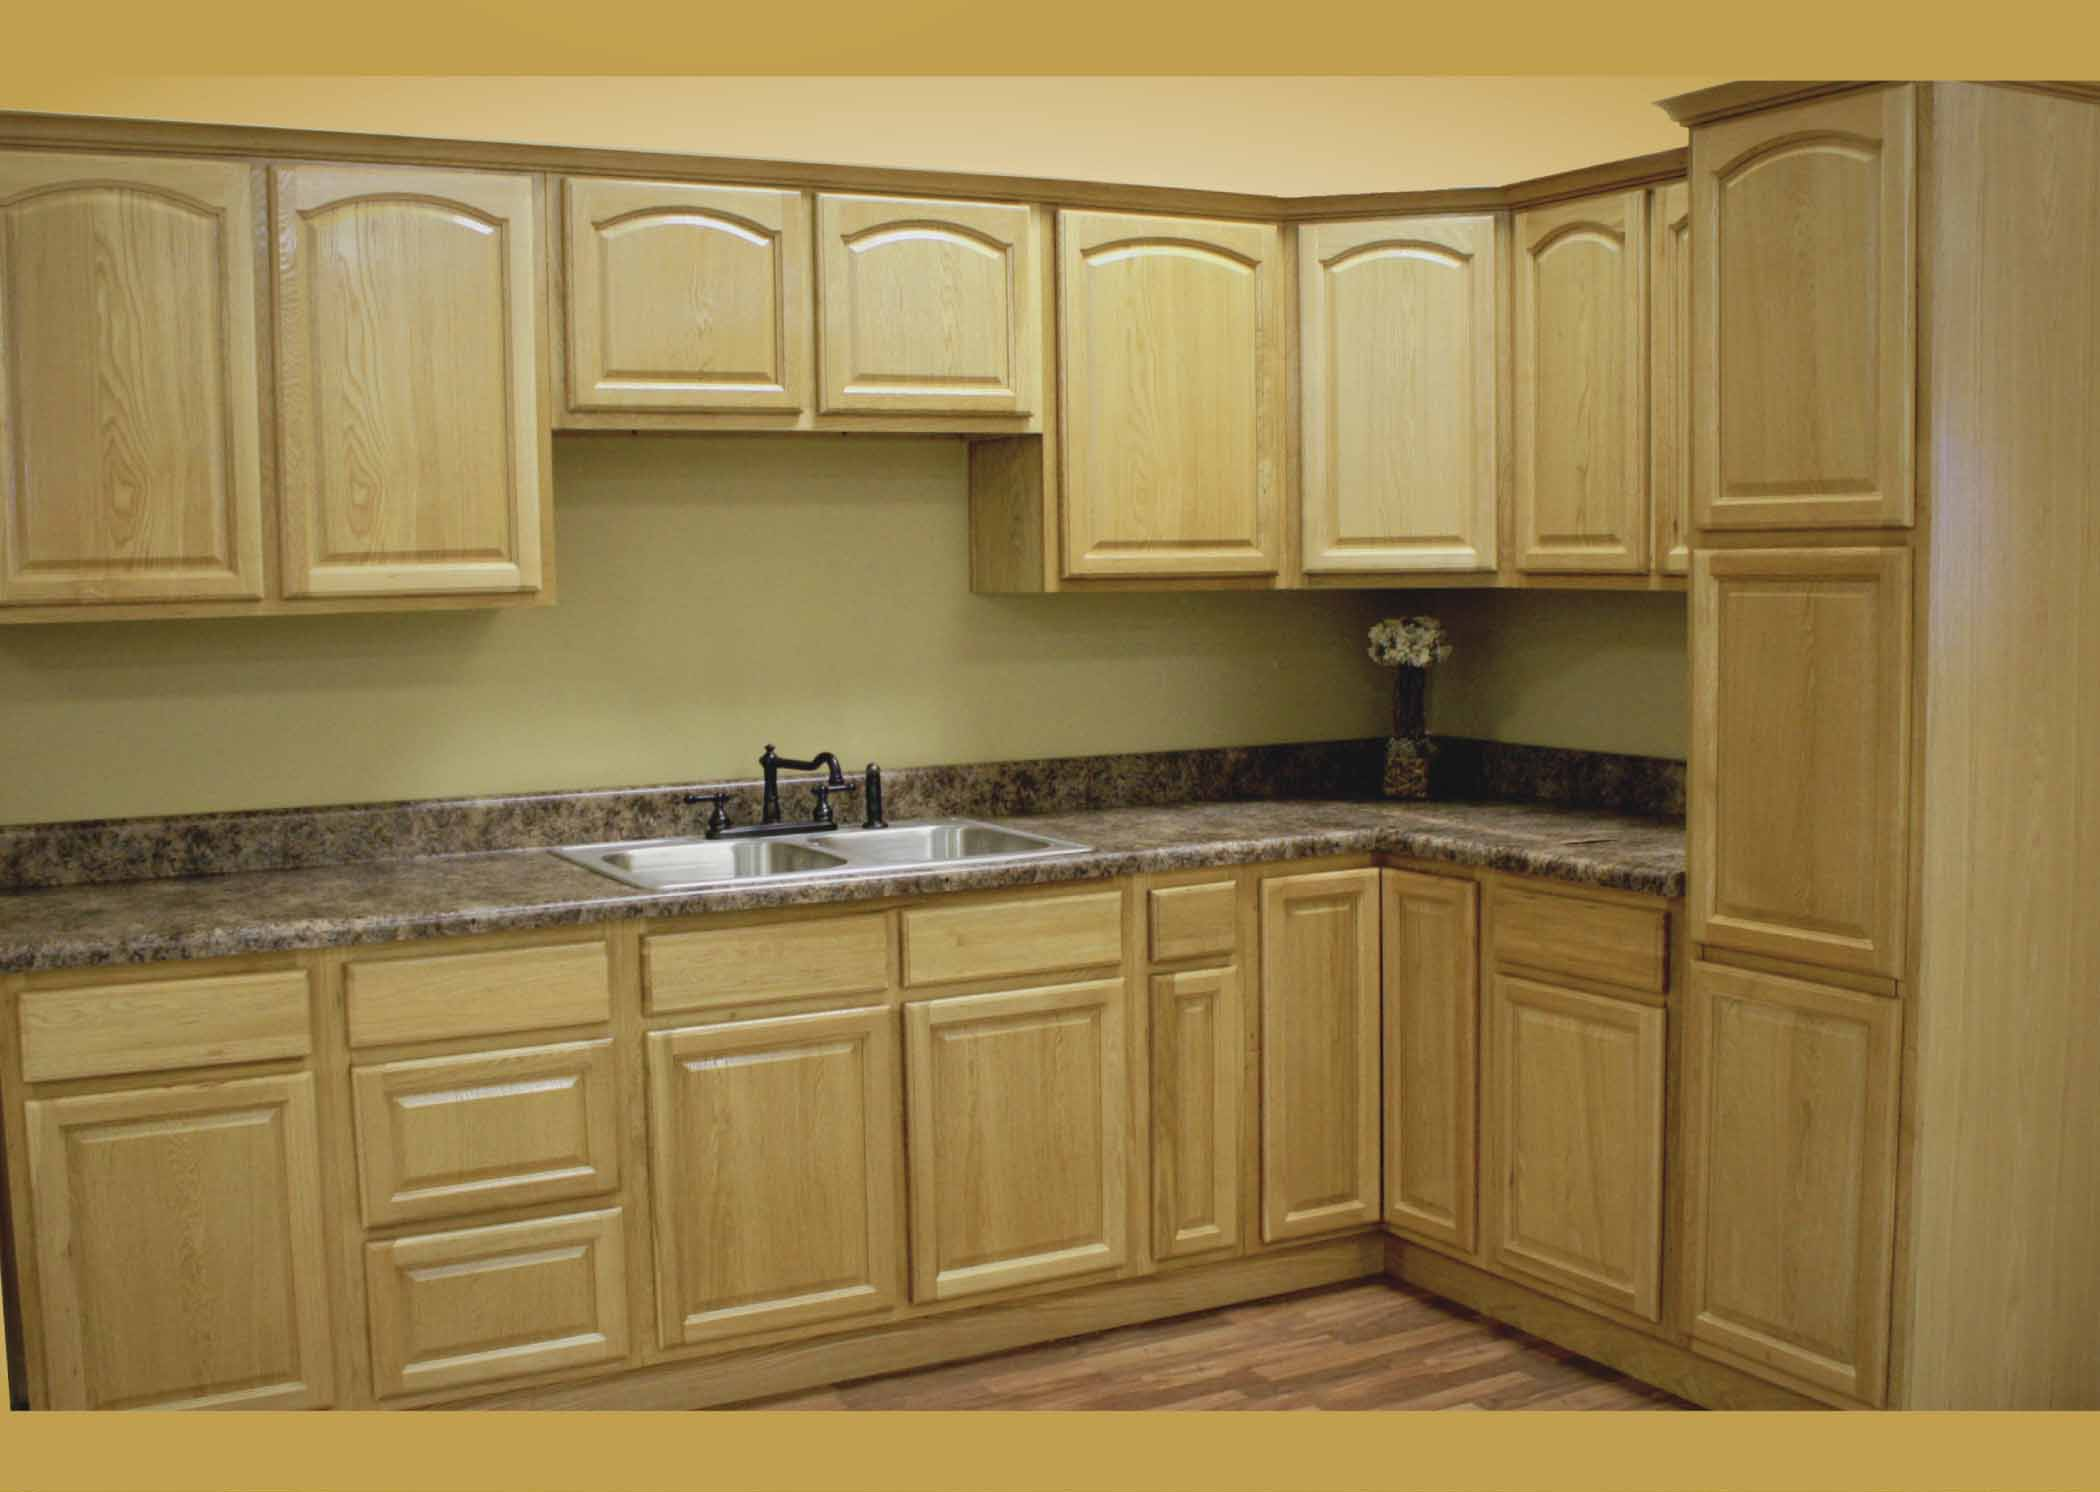 instock kitchen cabinets backsplashes in stock  new home improvement products at